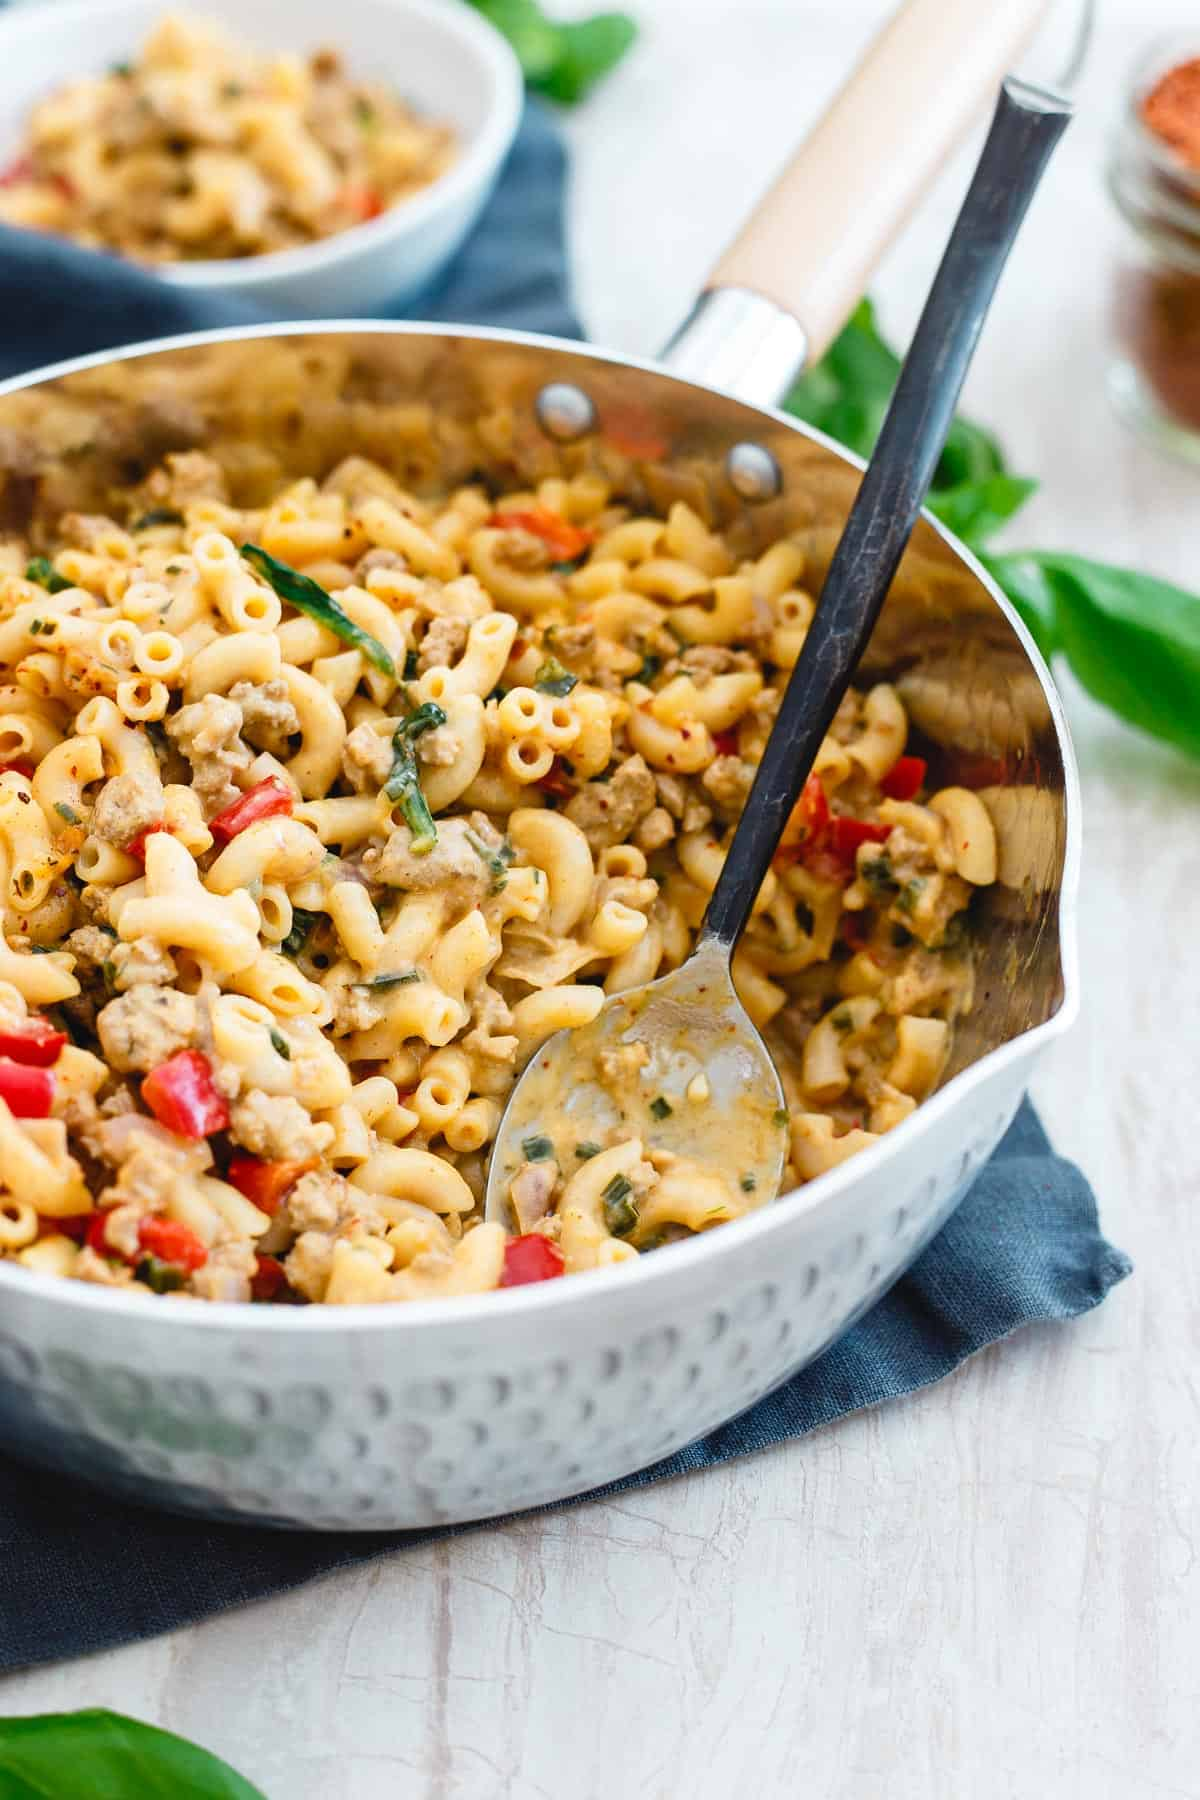 Turkey skillet mac and cheese is creamy and decadent tasting but still an easy and healthy dinner you can have ready in just 30 minutes with only one dirty pot!